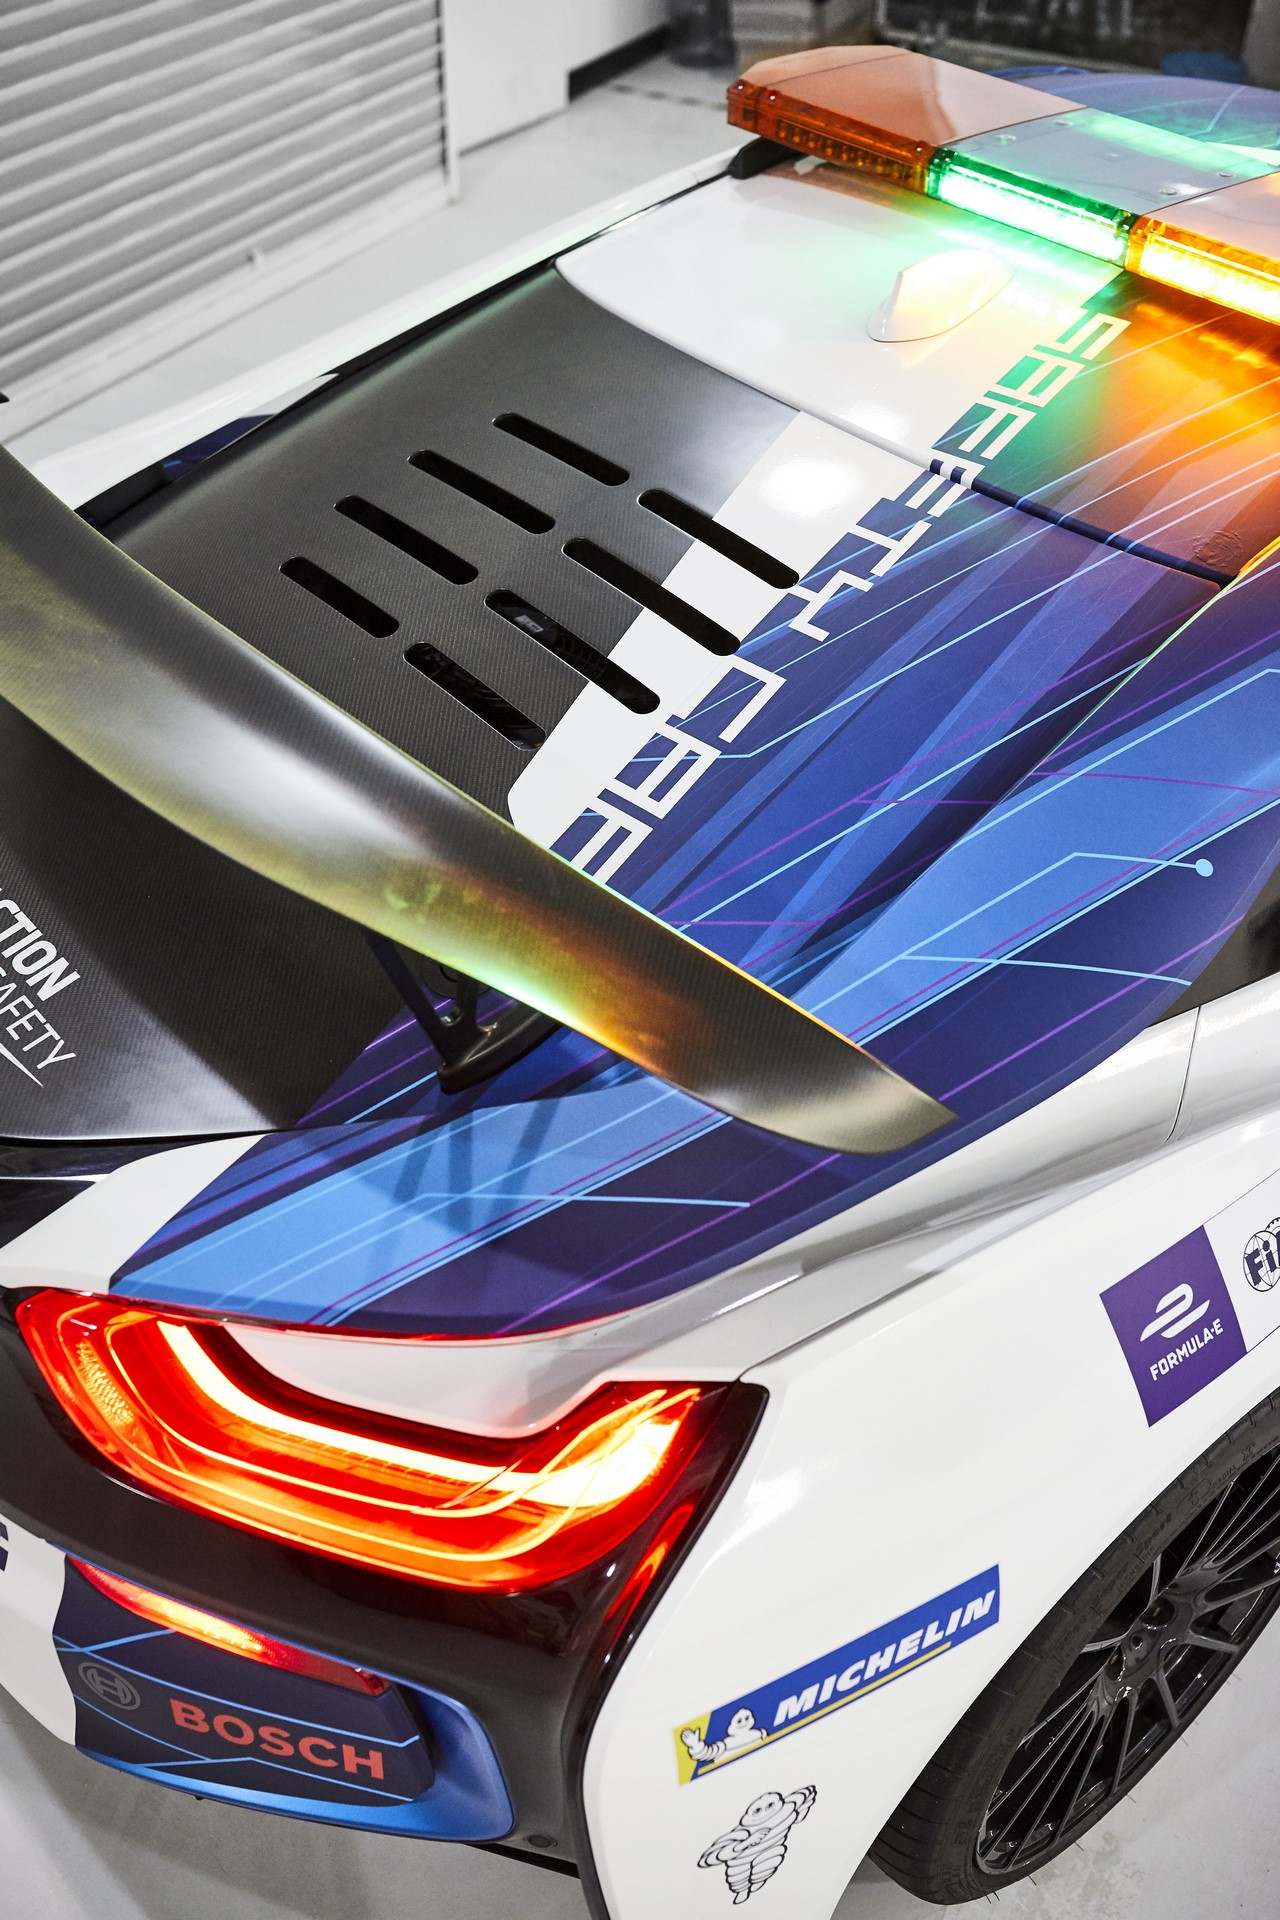 BMW i8 Formula E safety car 2019 (2)